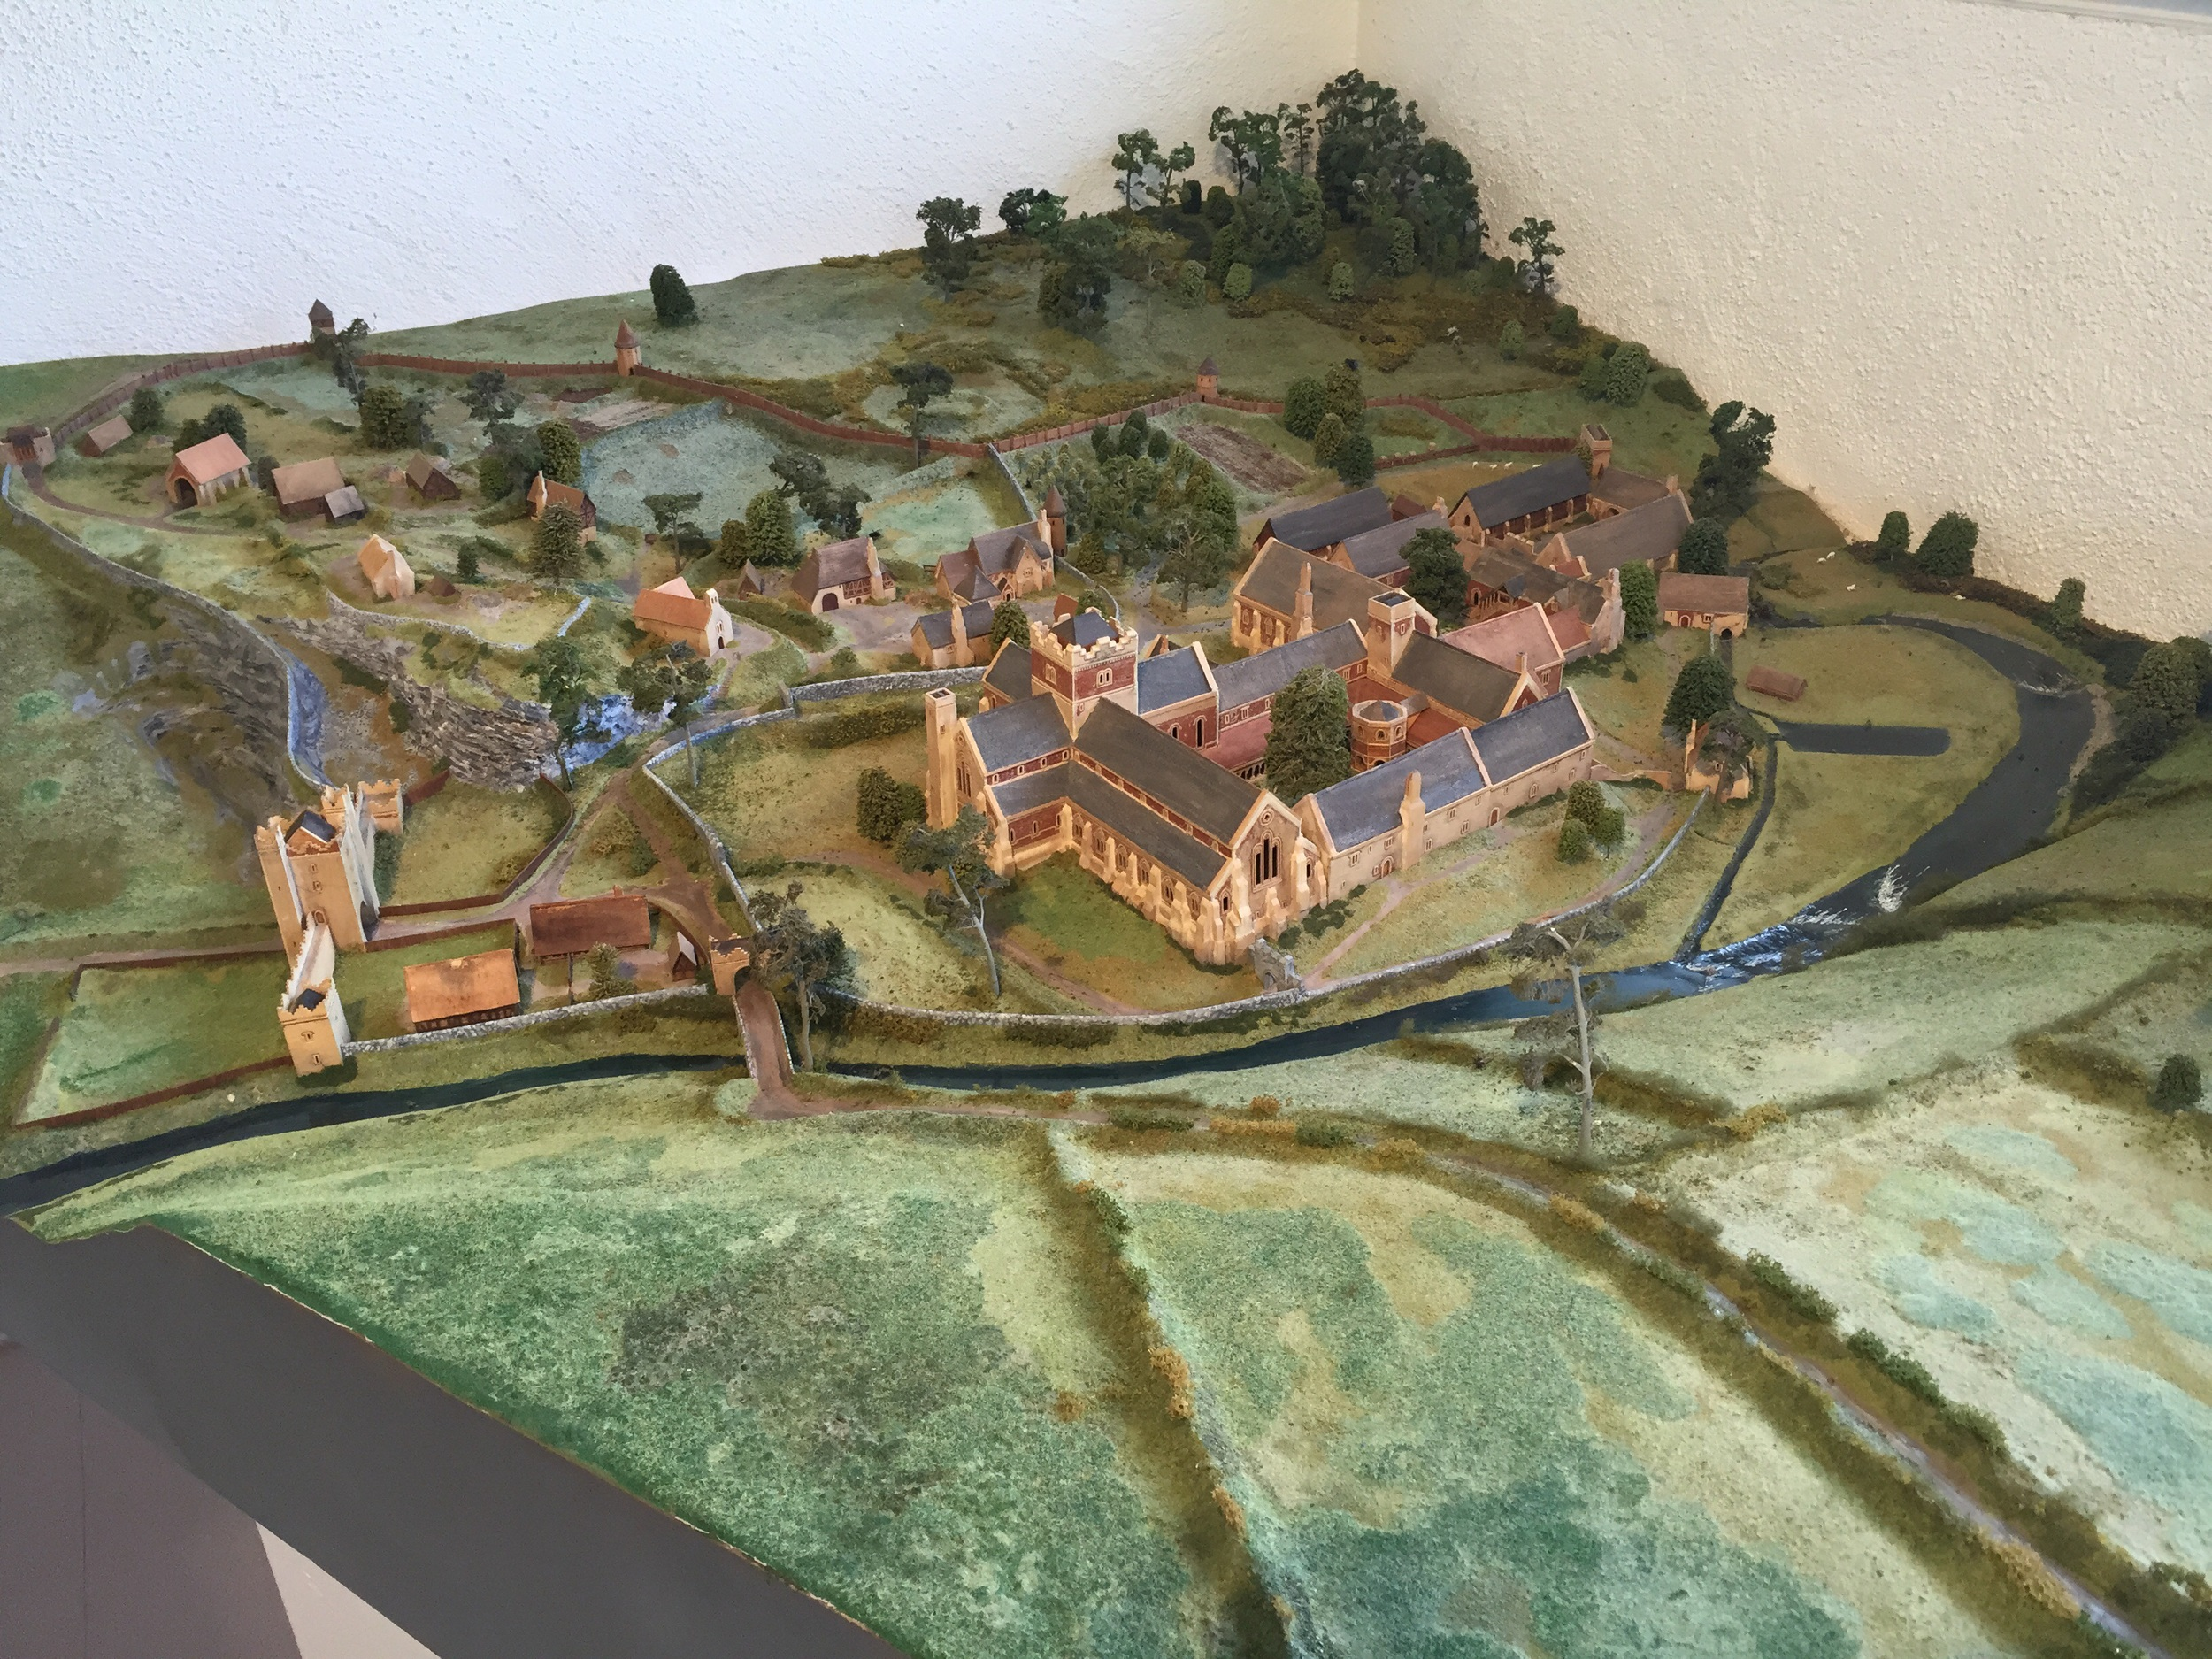 Model of what it used to look like...